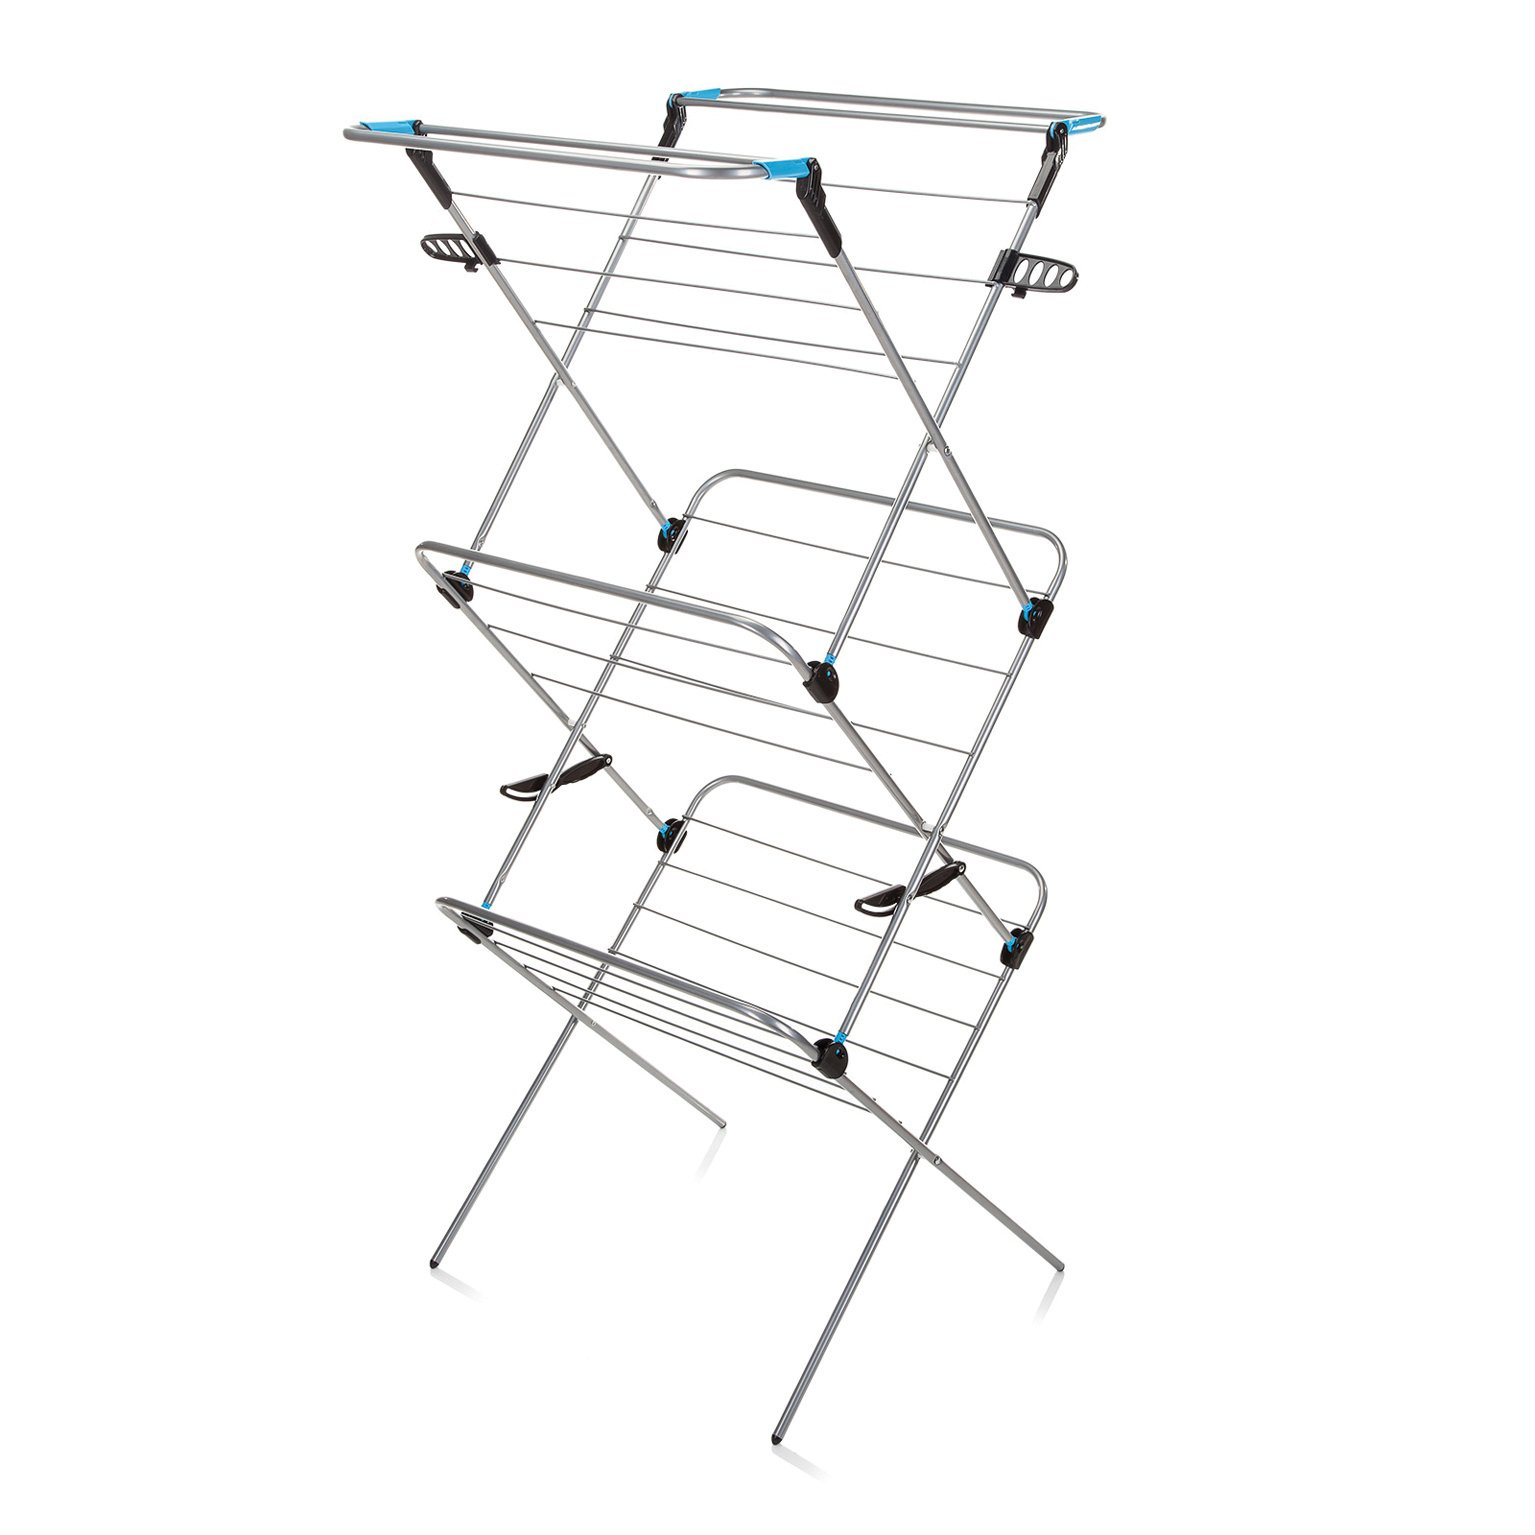 Minky 3 Tier Verso Clothes Line Airer